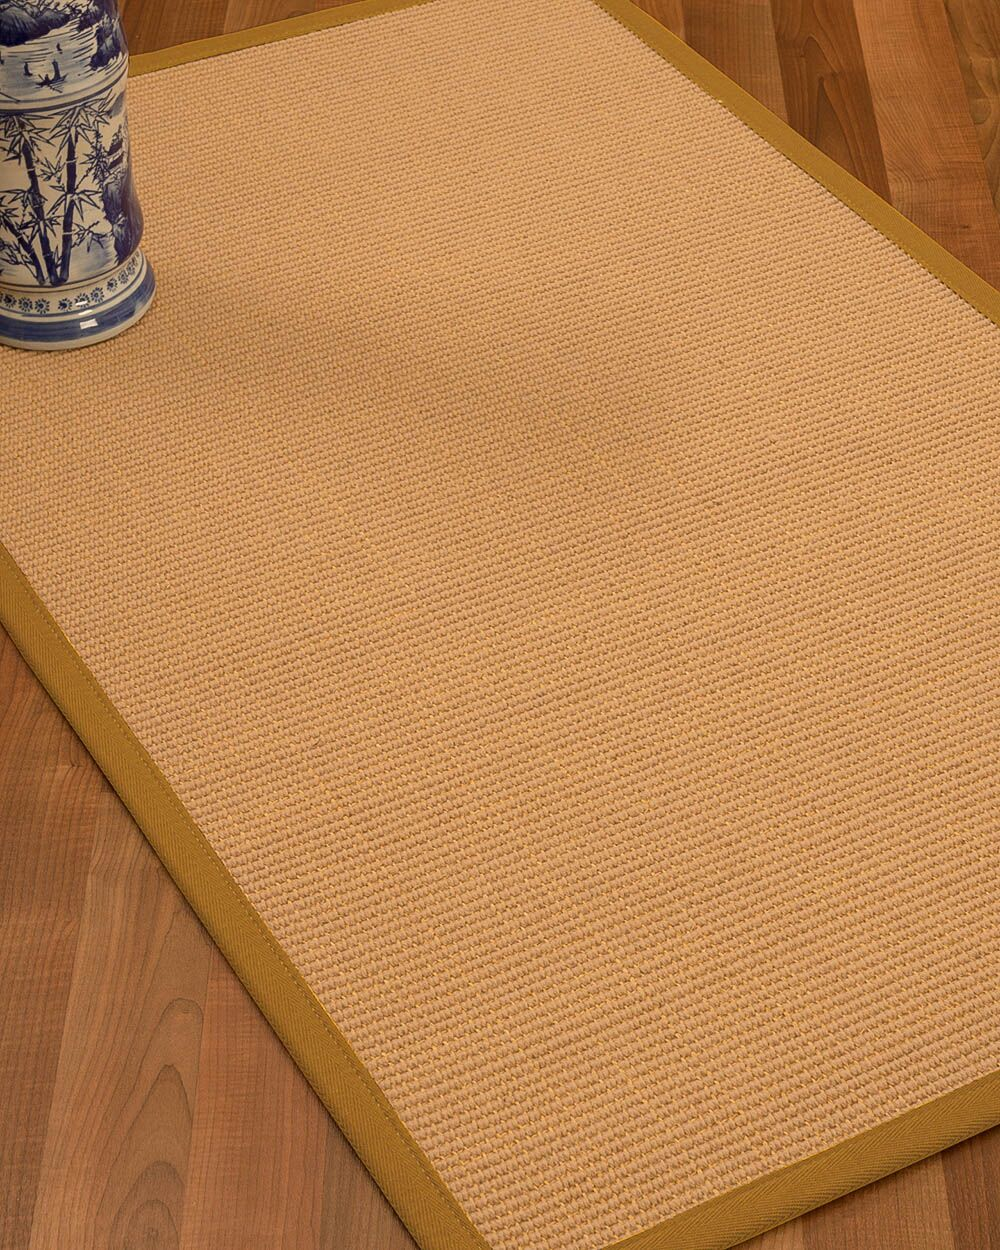 Lafayette Border Hand-Woven Wool Beige/Sienna Area Rug Rug Size: Rectangle 6' x 9', Rug Pad Included: Yes